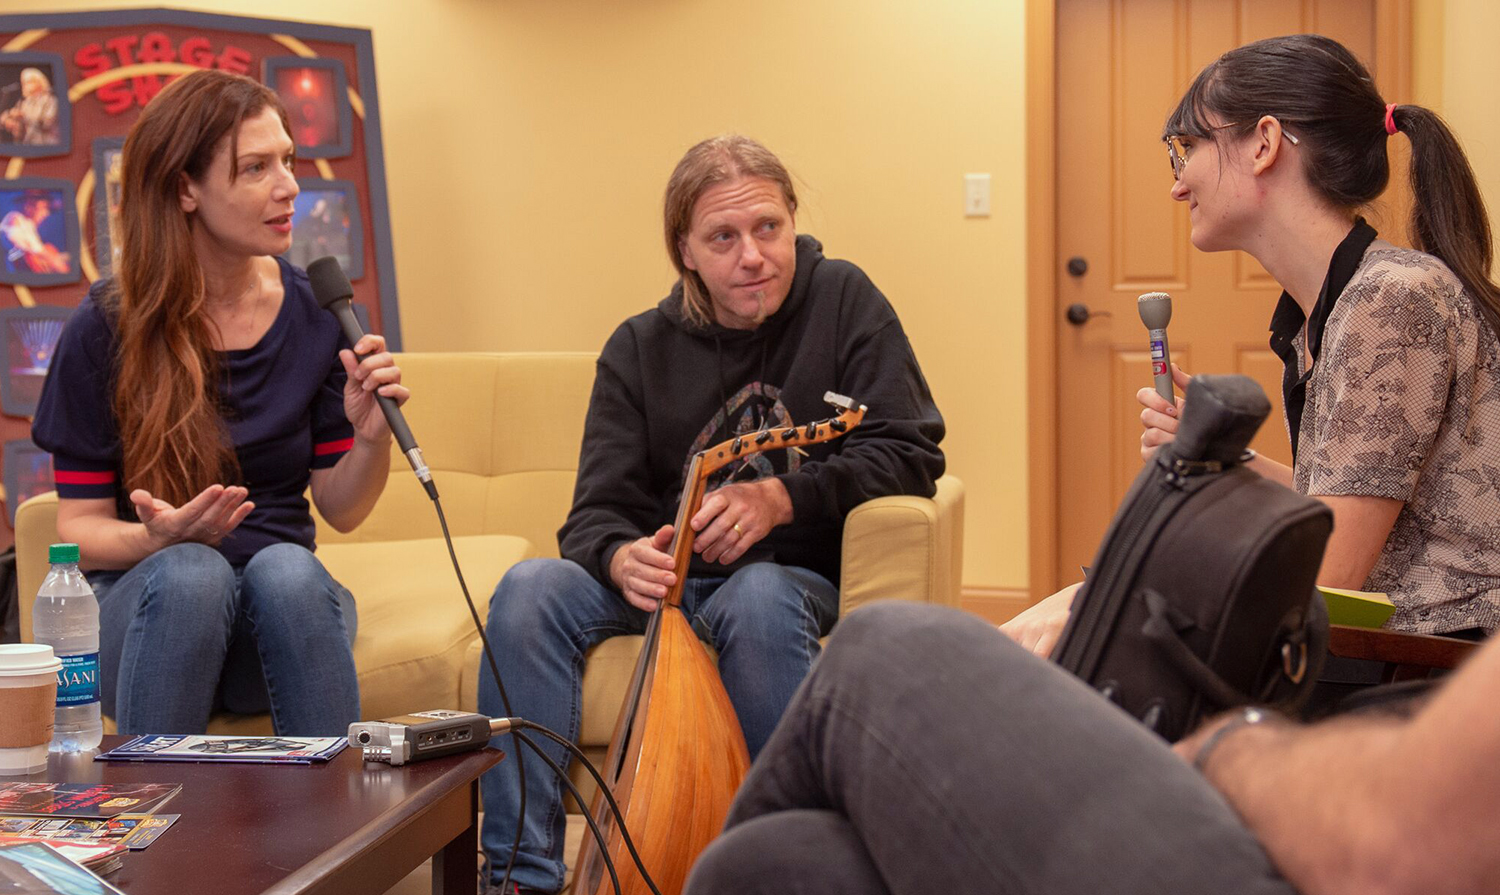 Sofi & the Baladis interview with Emily Votaw from WOUB.